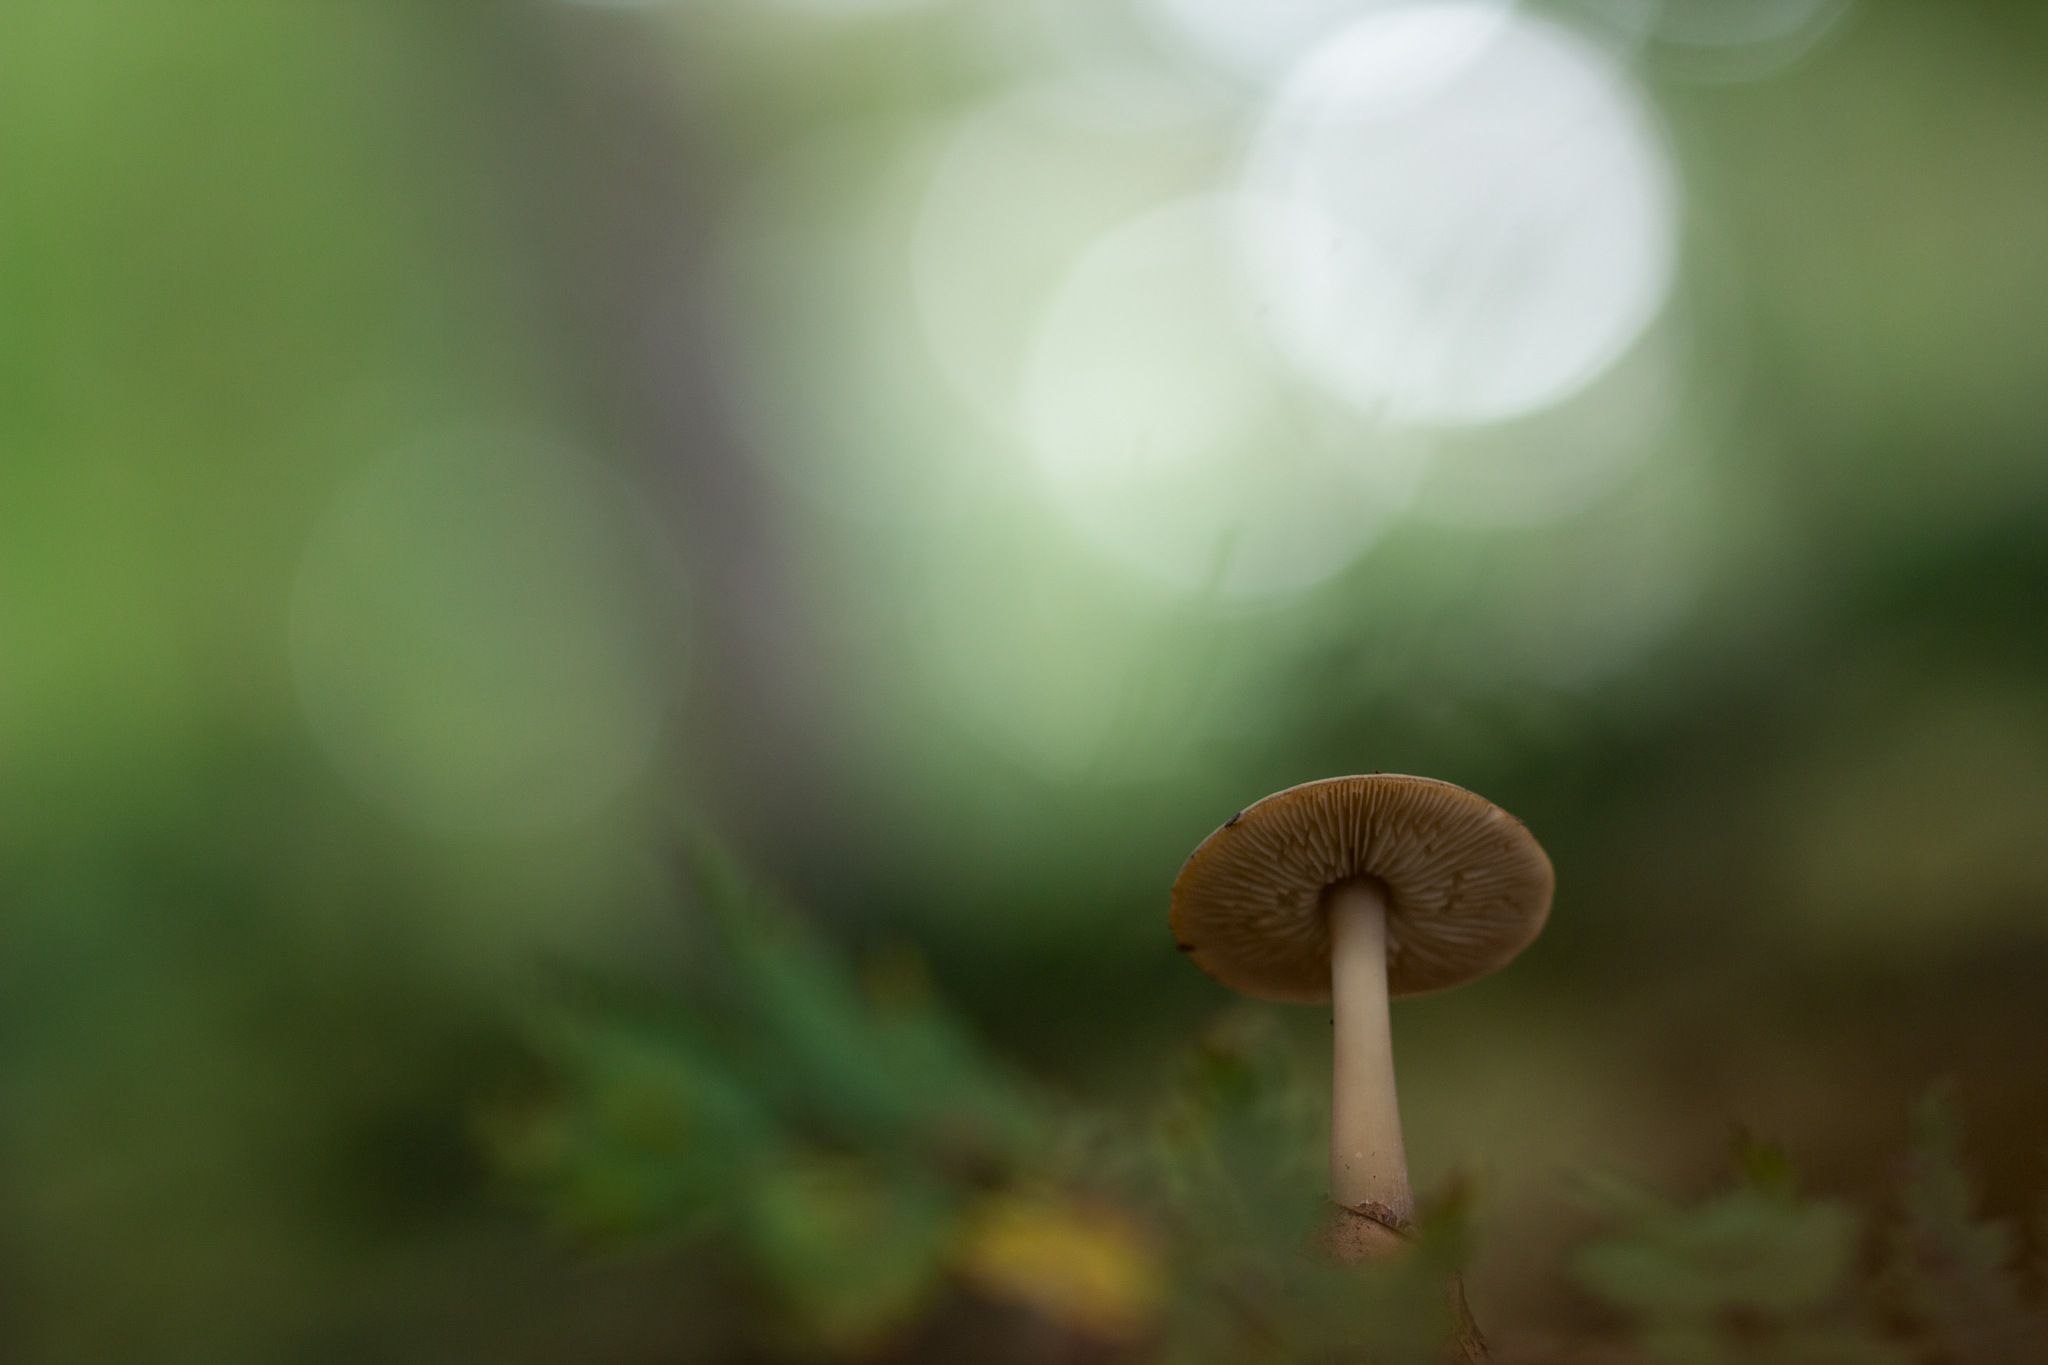 Champignon by Yves Droeven